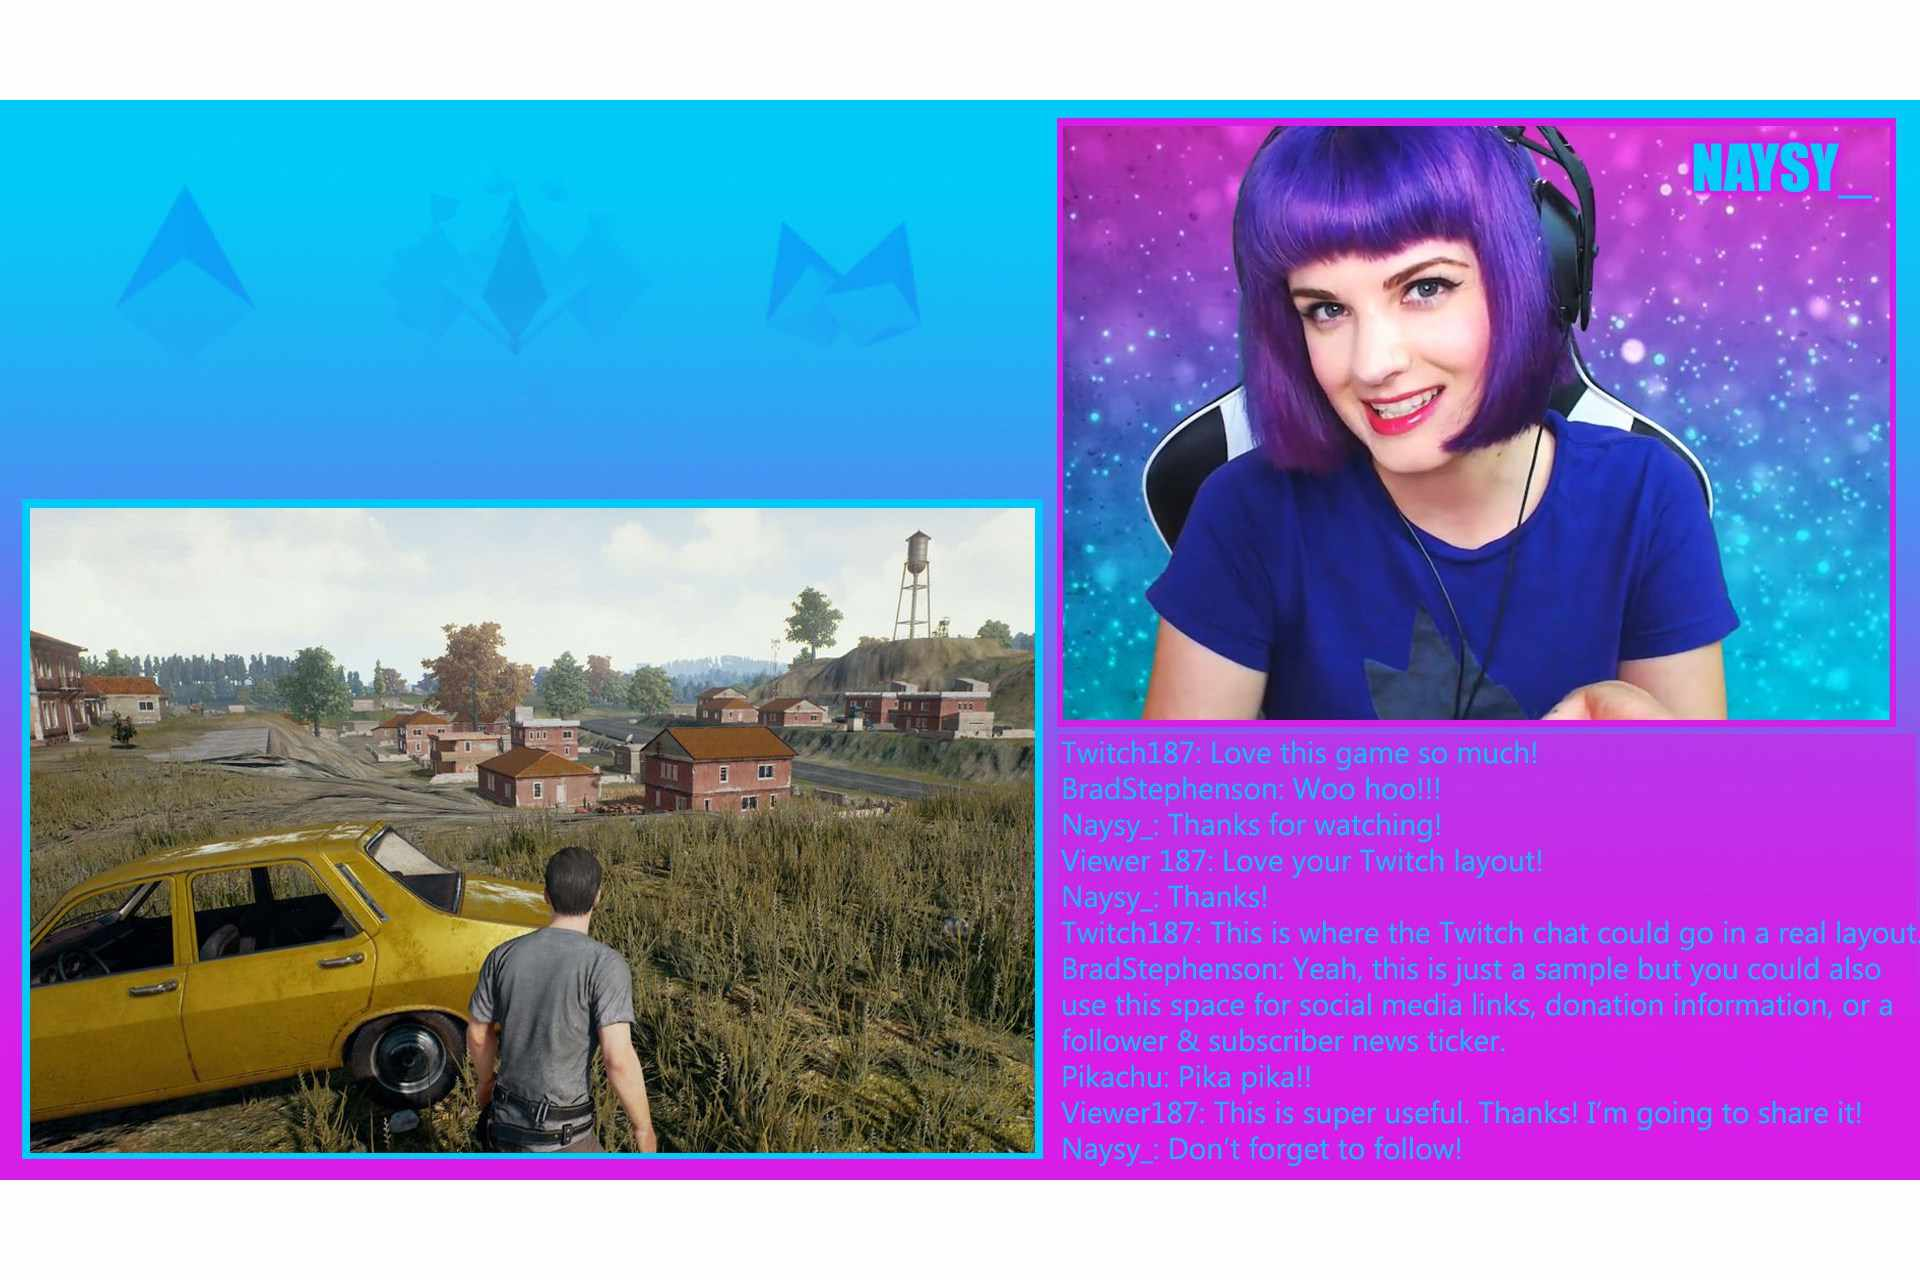 Sample Twitch layout created in Photoshop featuring Twitch streamer, Naysy_